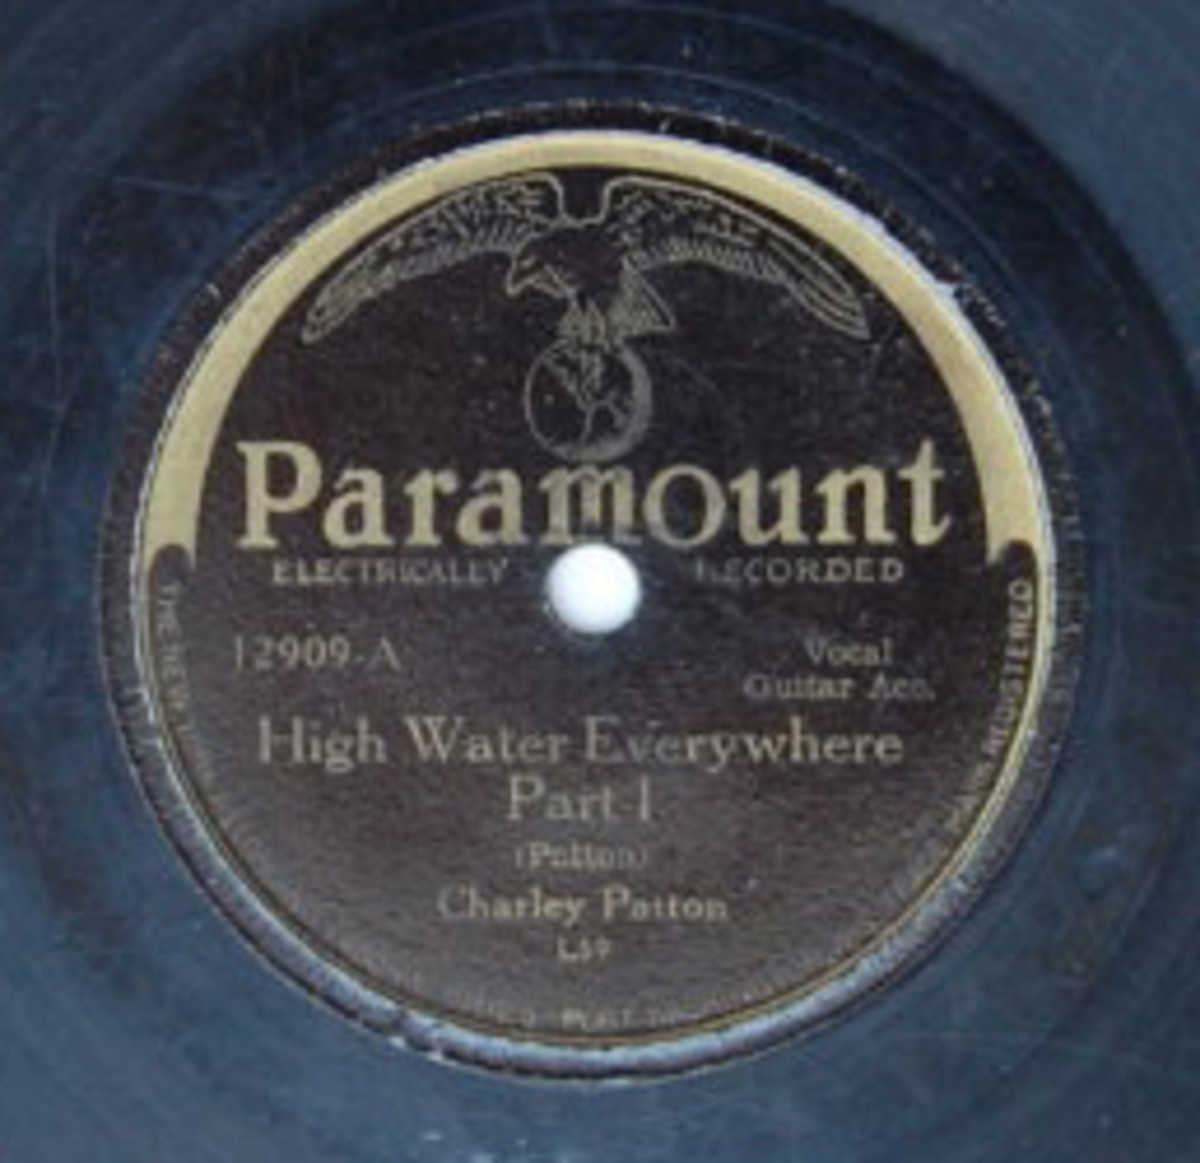 Charley Patton High Water Everywhere